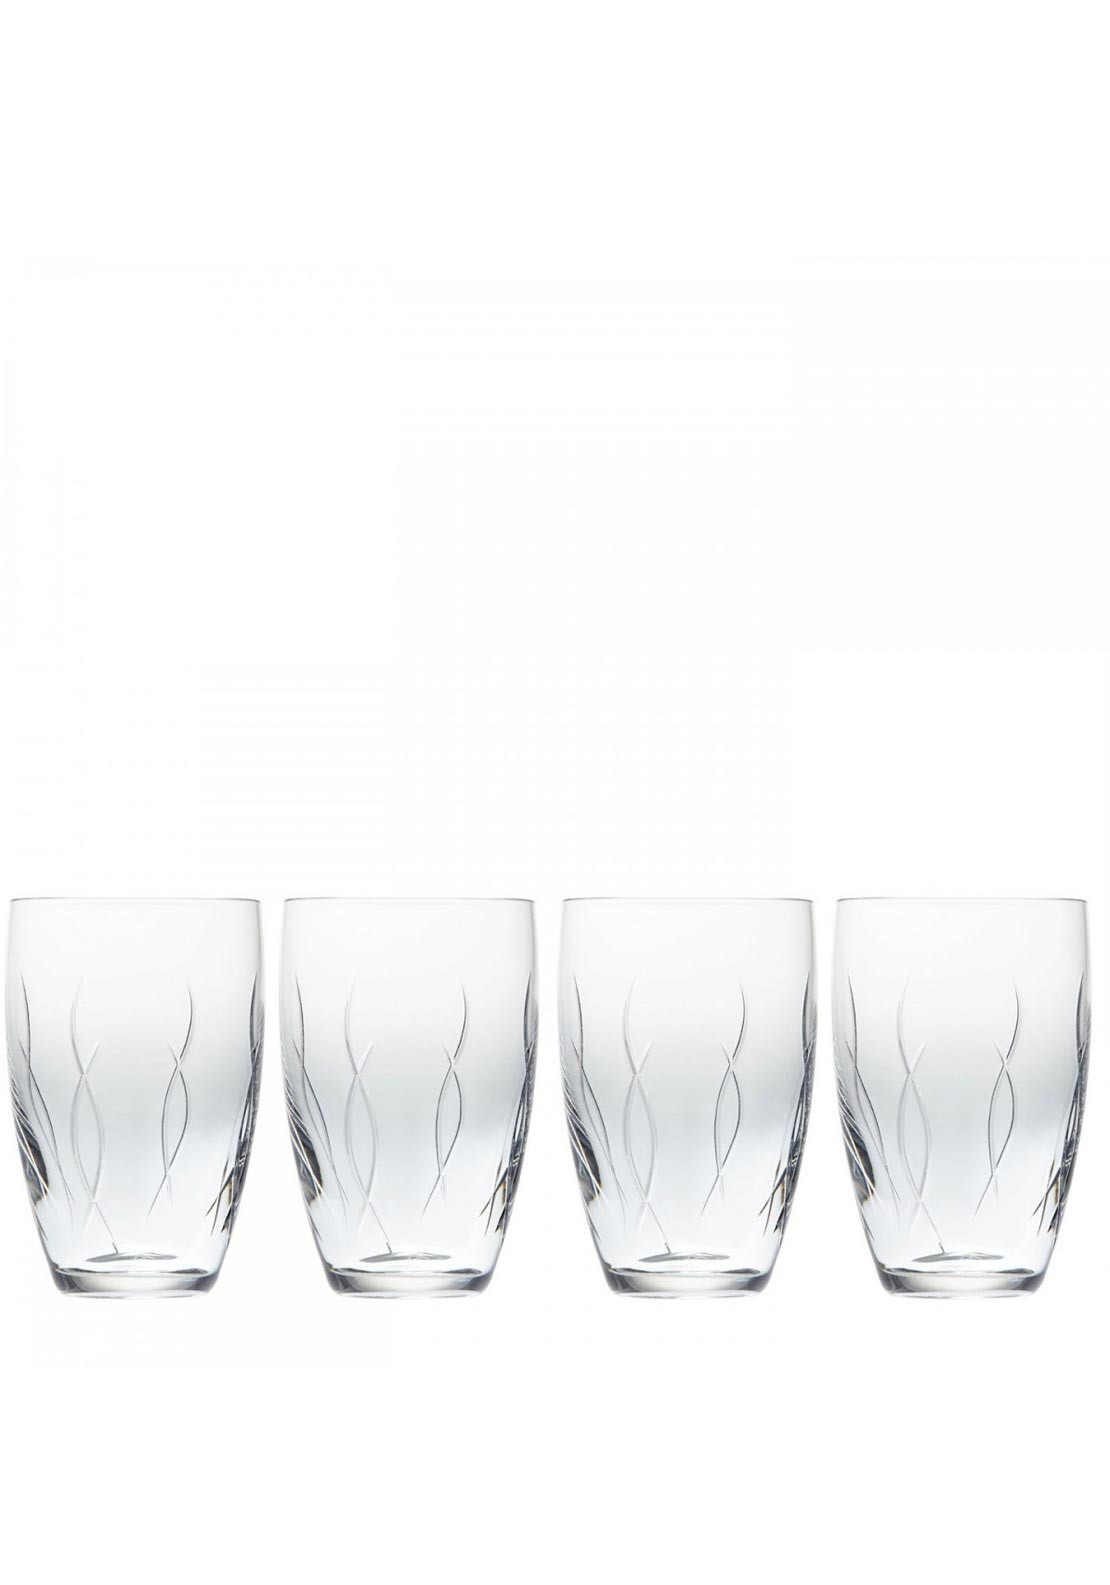 John Rocha at Waterford Weft Tumbler Glasses, Set of 4